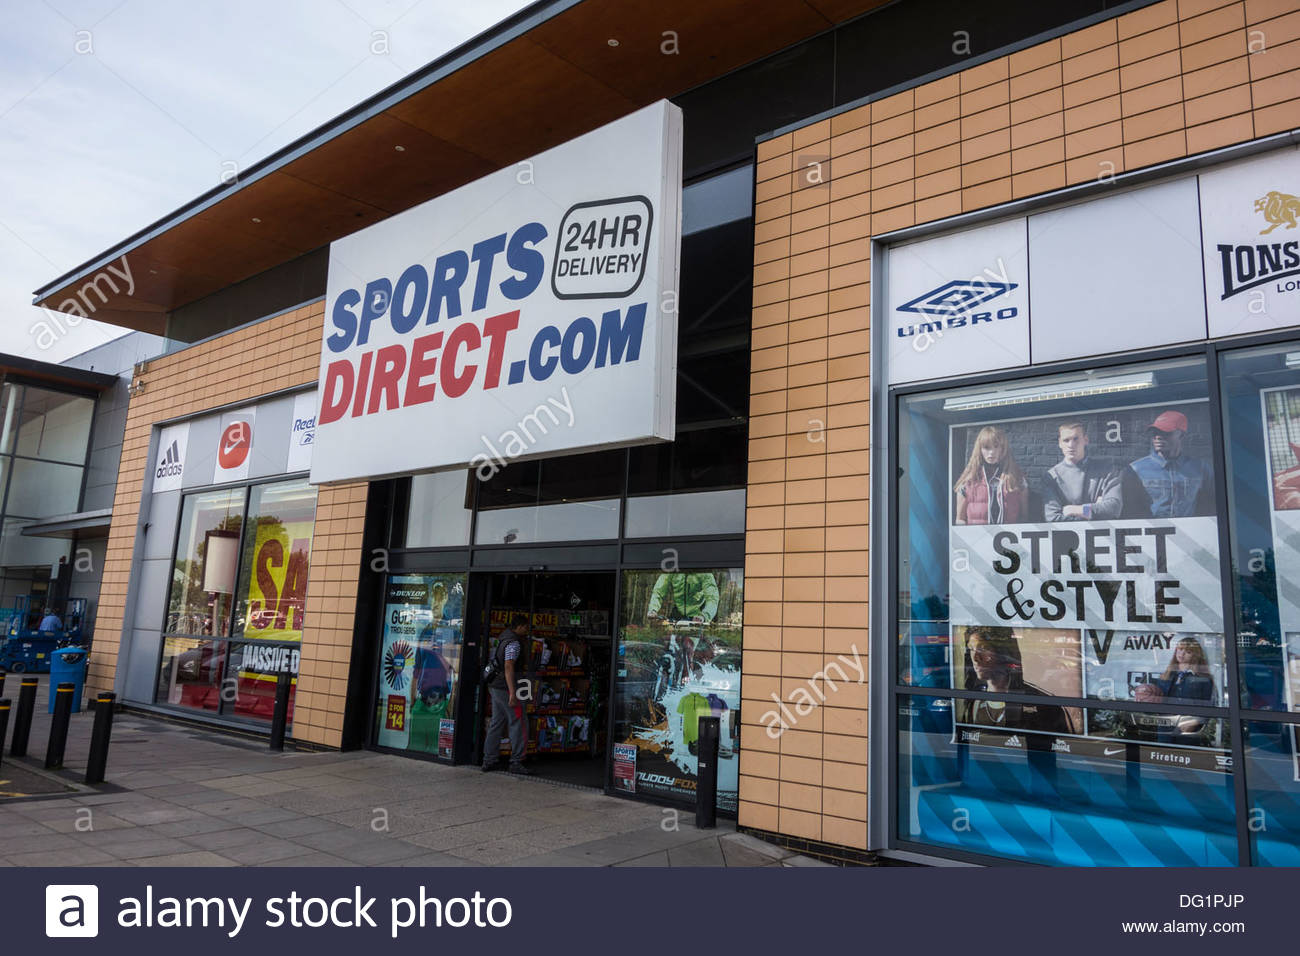 sports direct store stock photos sports direct store stock images alamy. Black Bedroom Furniture Sets. Home Design Ideas